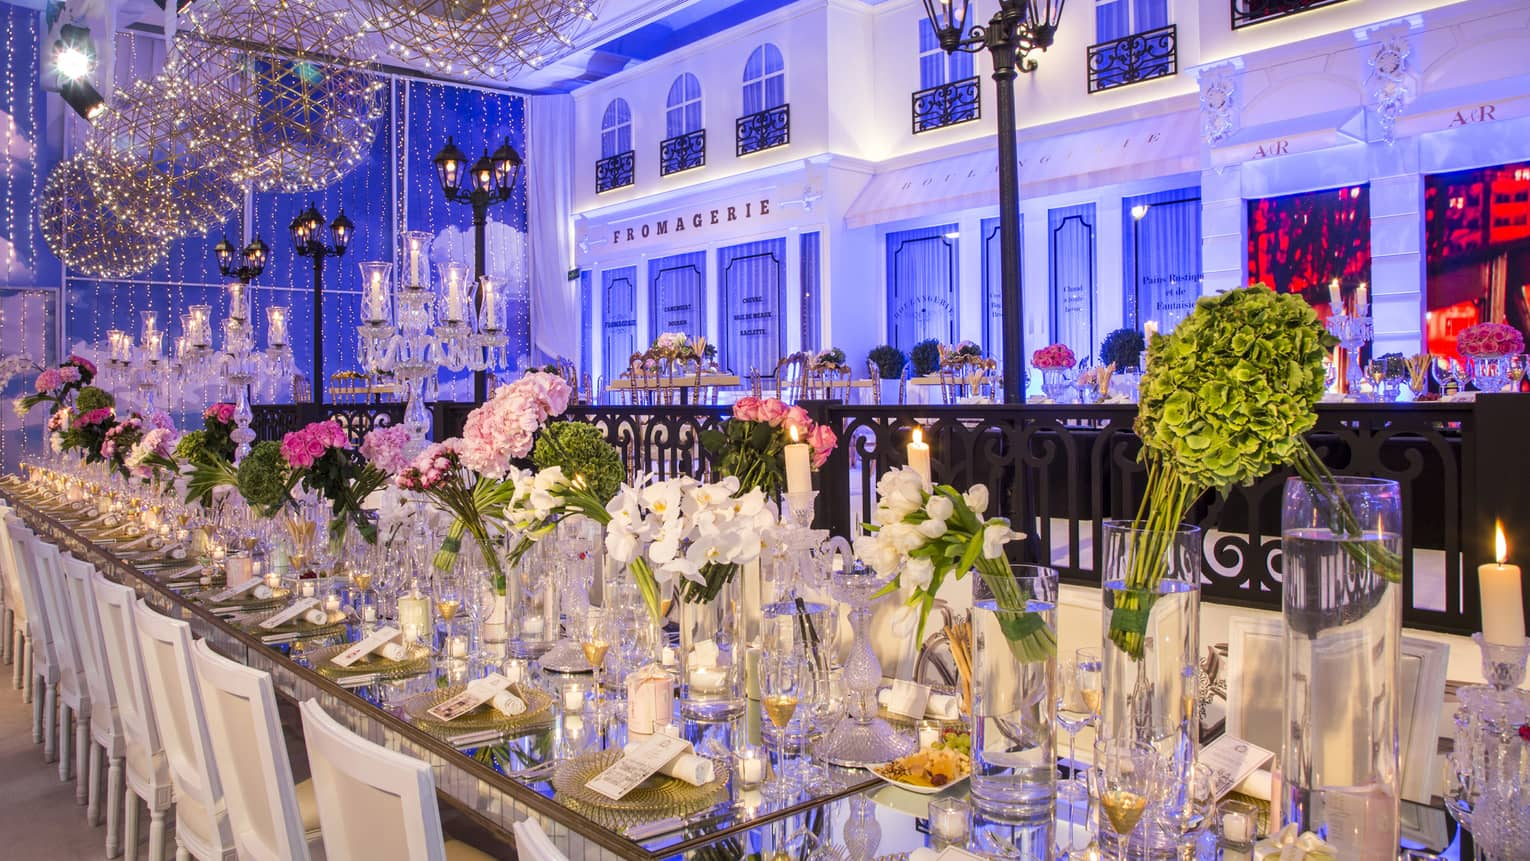 Long banquet dining table with white orchids, pink flowers under modern lights, Paris accent wall with blue lights